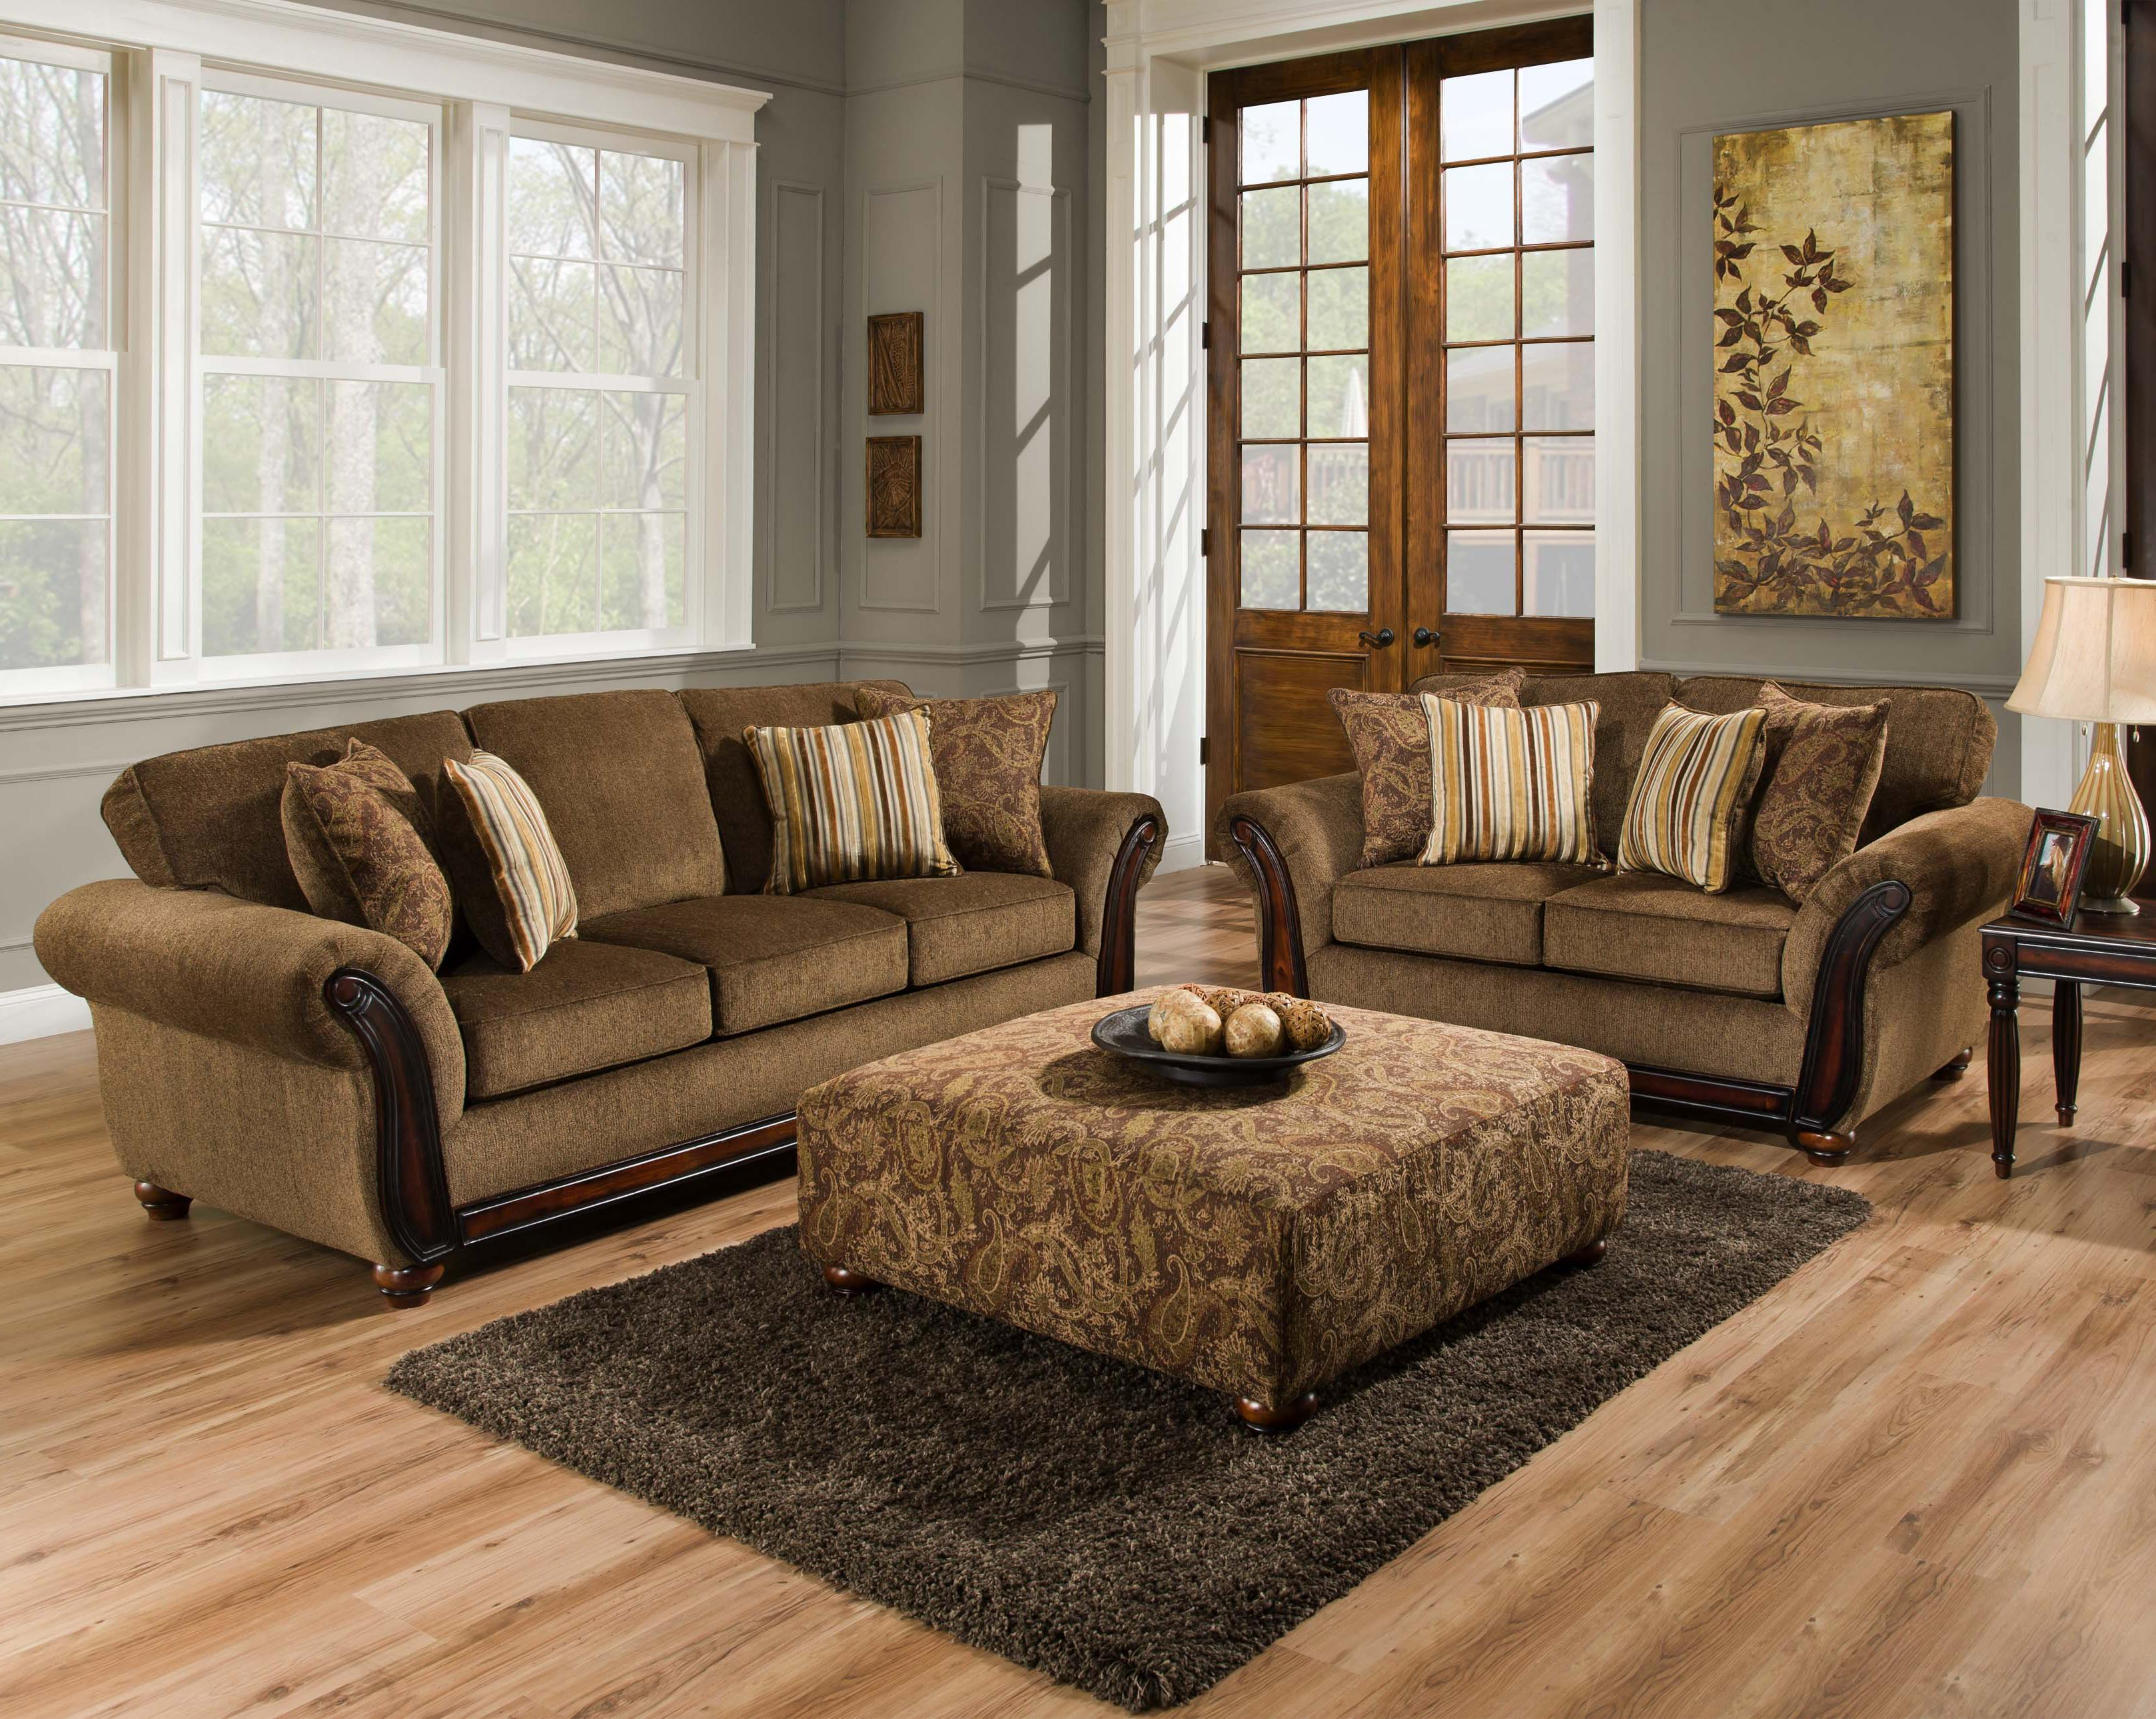 American Furniture 5650 Stationary Living Room Group Furniture Fair North